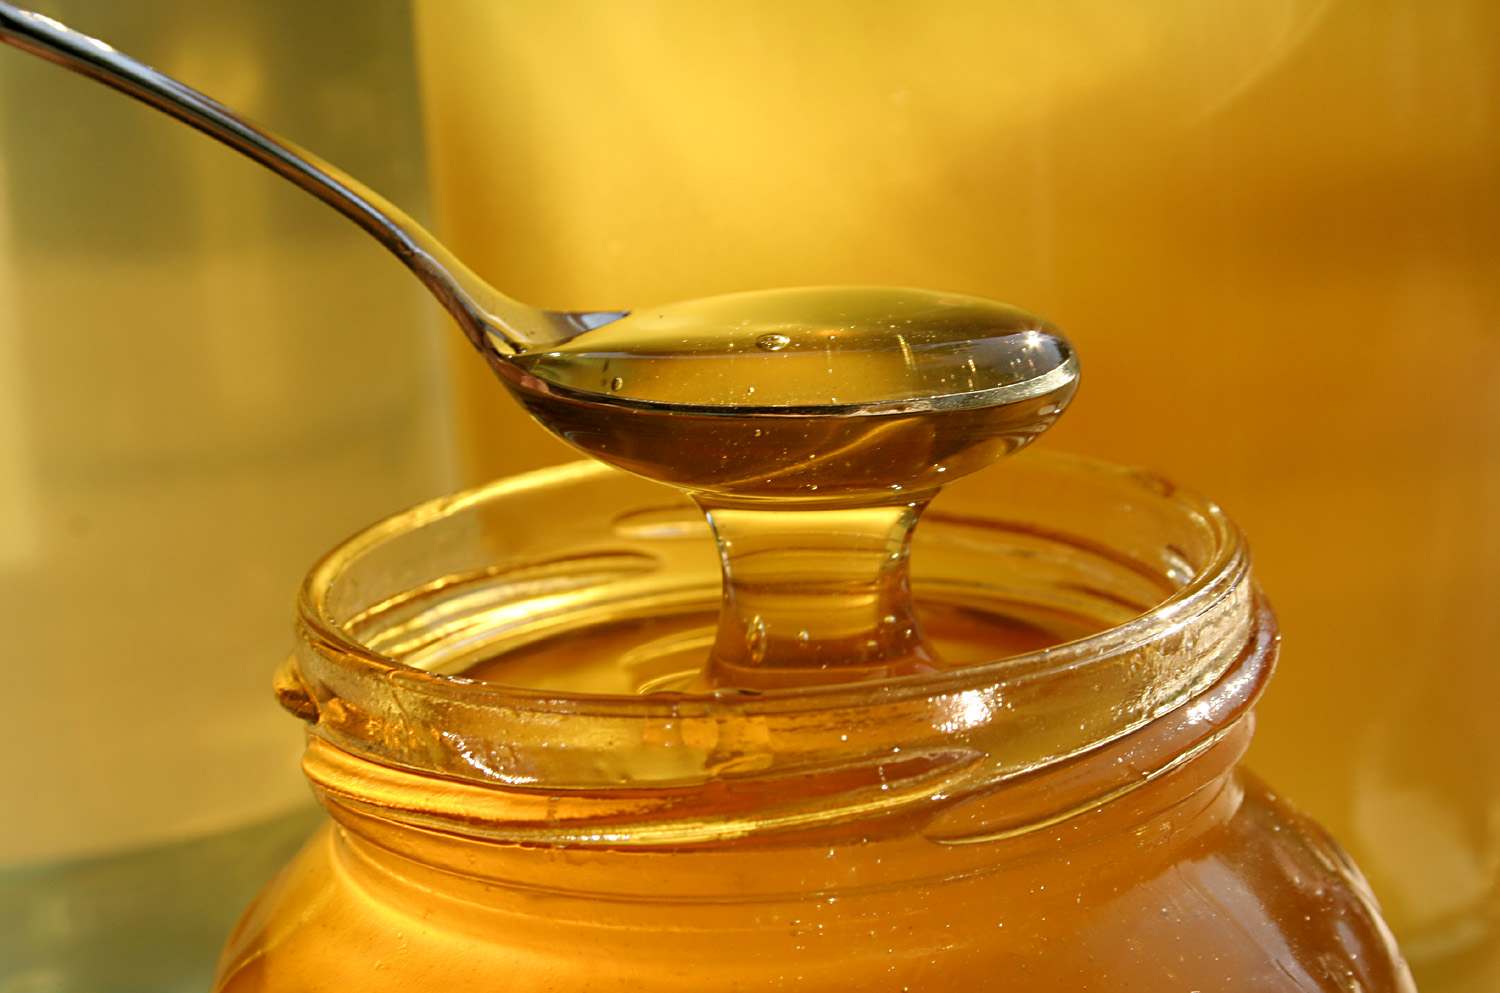 Tasty Honey in a Spoon 58.55 Kb